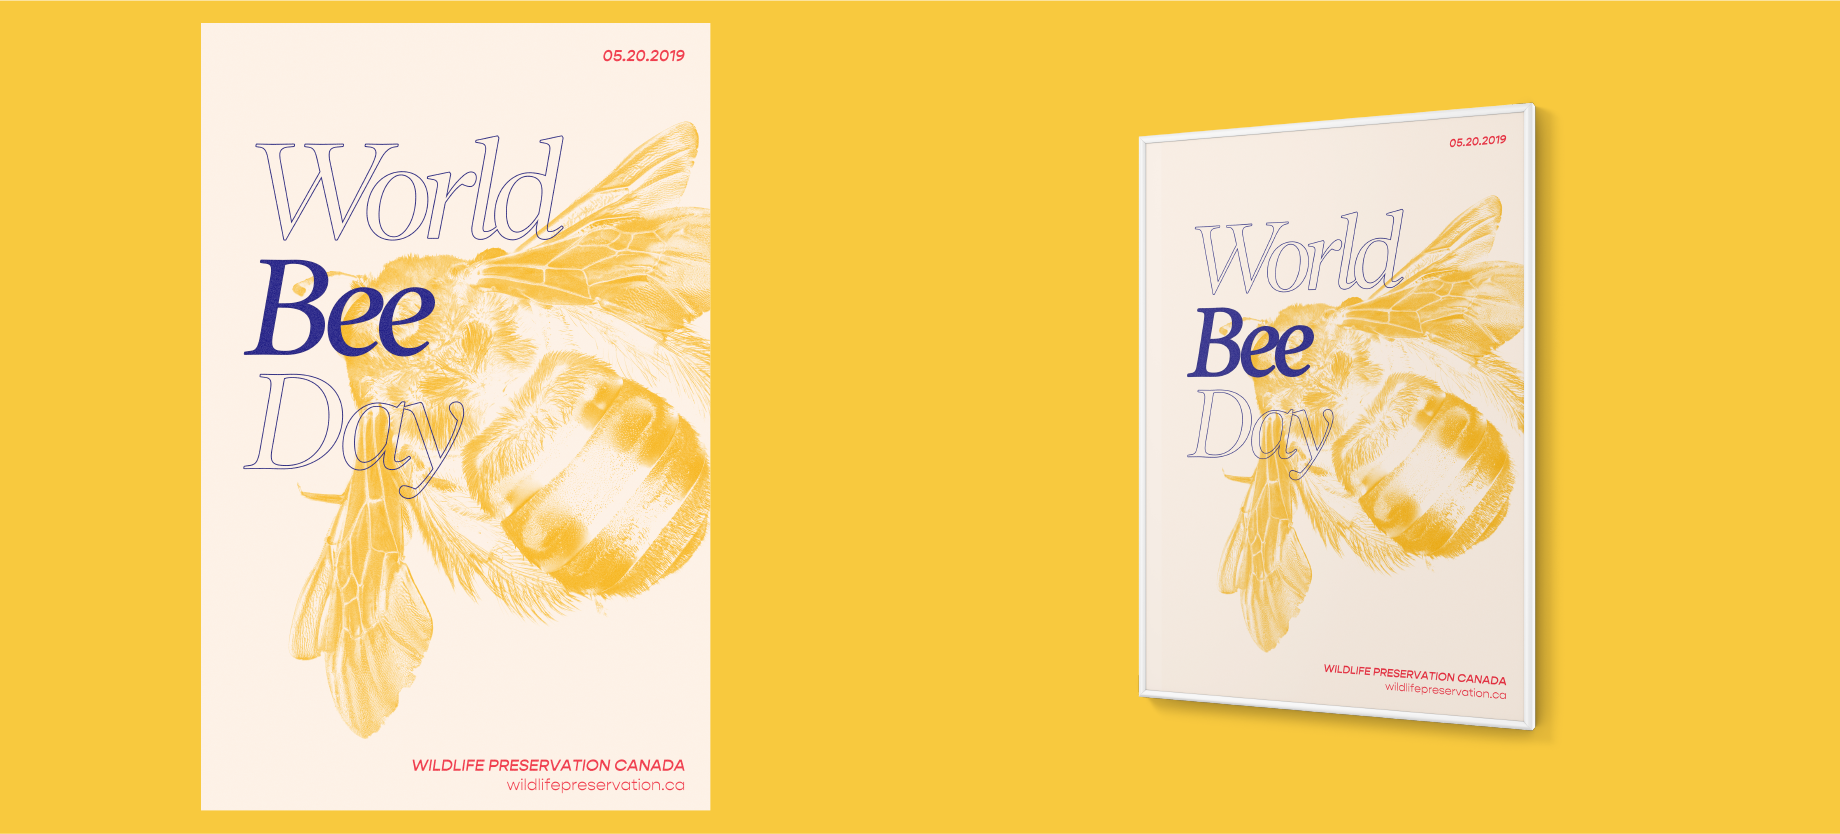 World Bee Day conservation poster medium